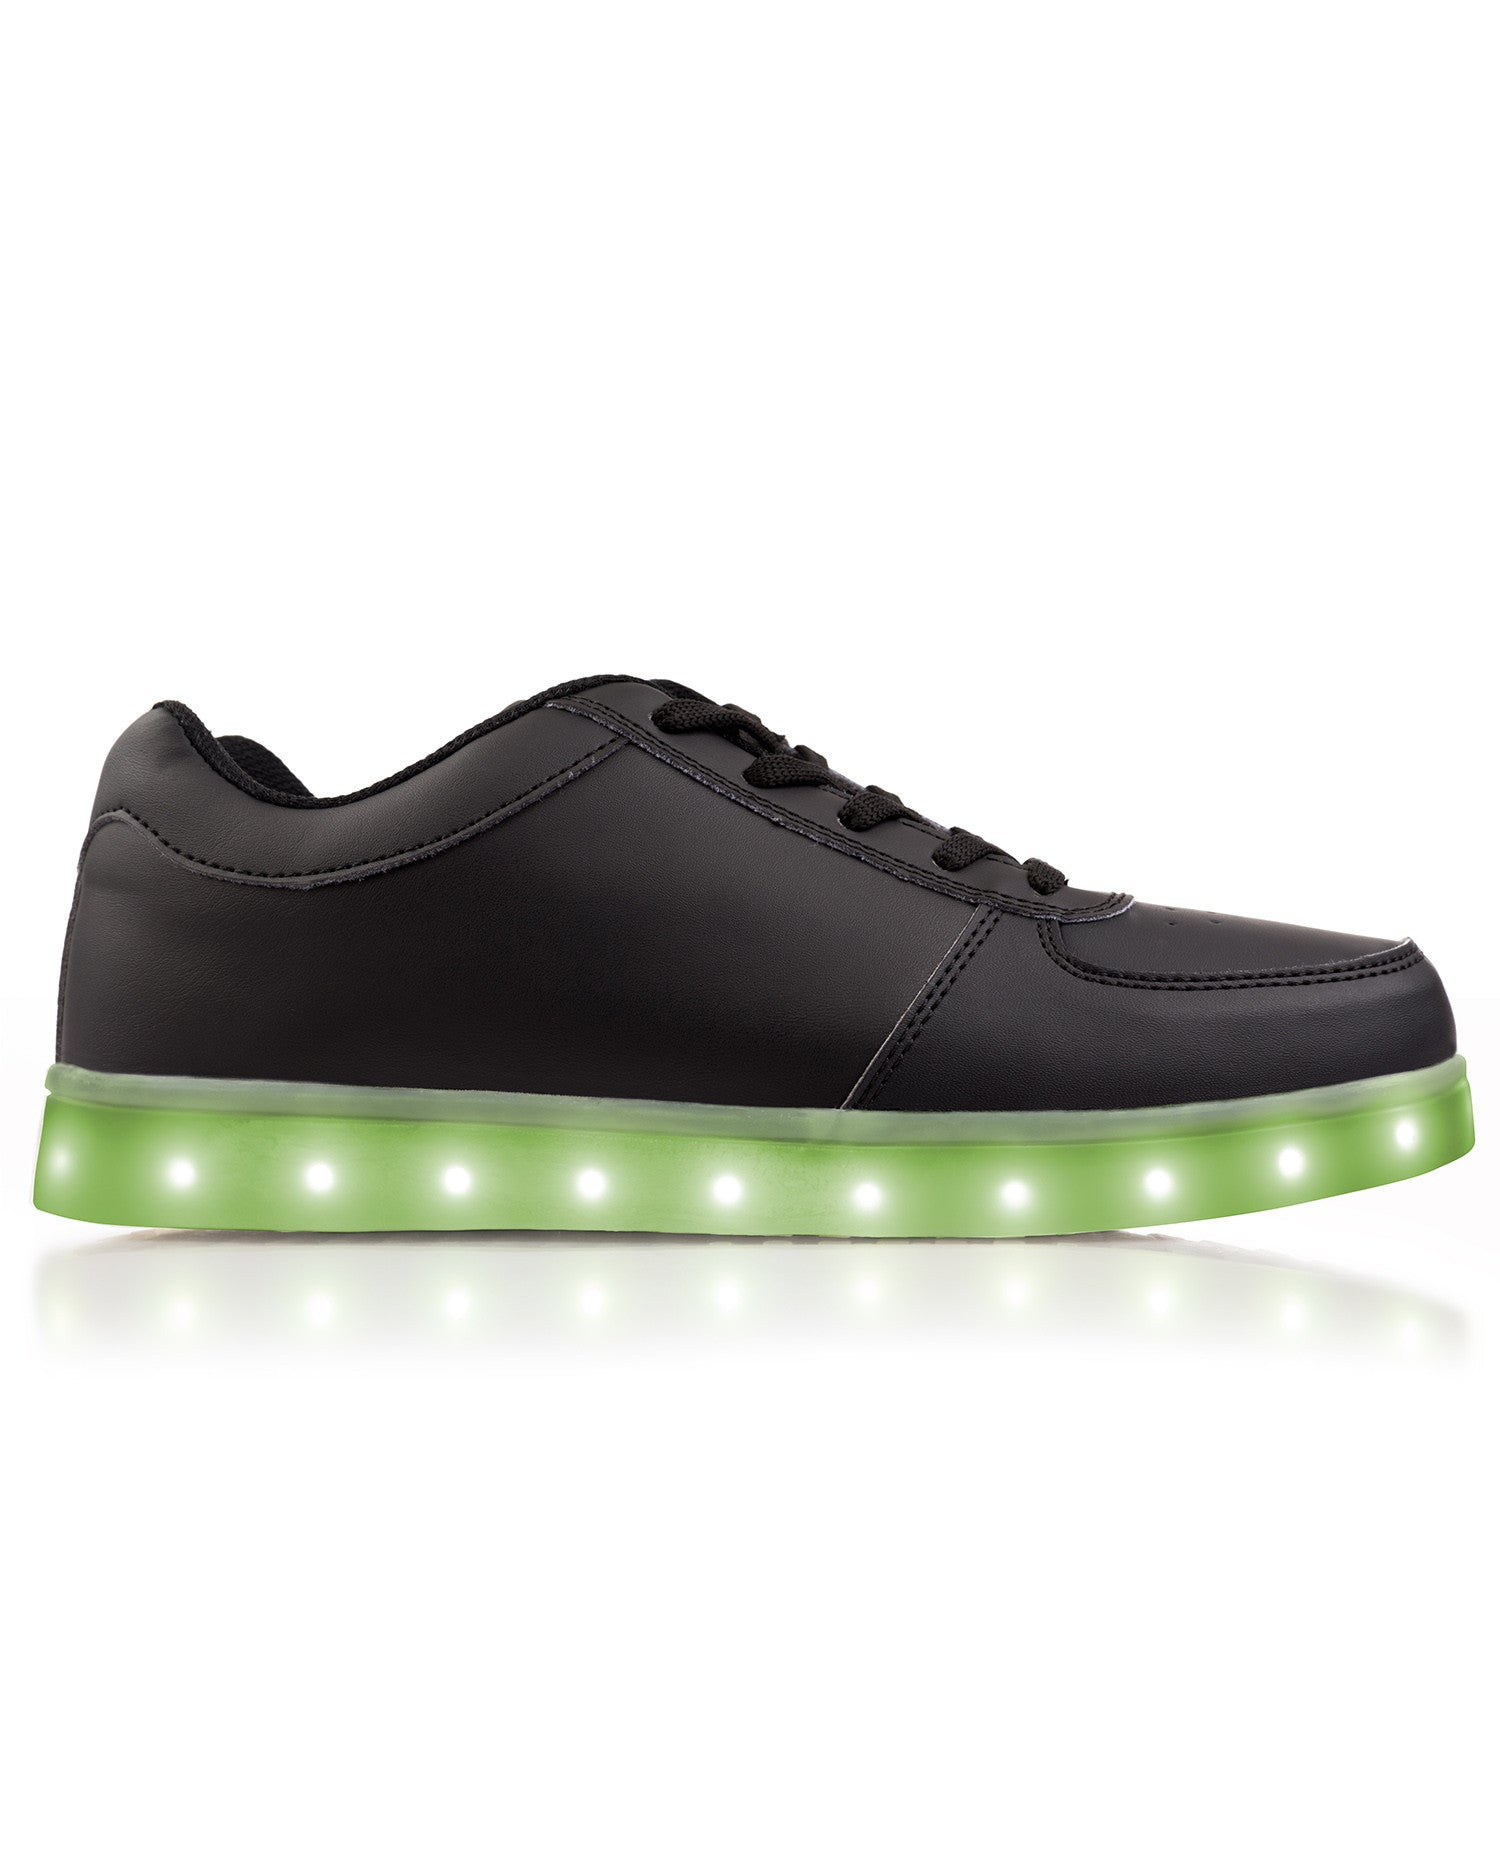 Electric Shoes - The Original - Electric Styles | World's Number 1 Light Up Shoe Store - {product_type}} - Black / Men's 8 - 7